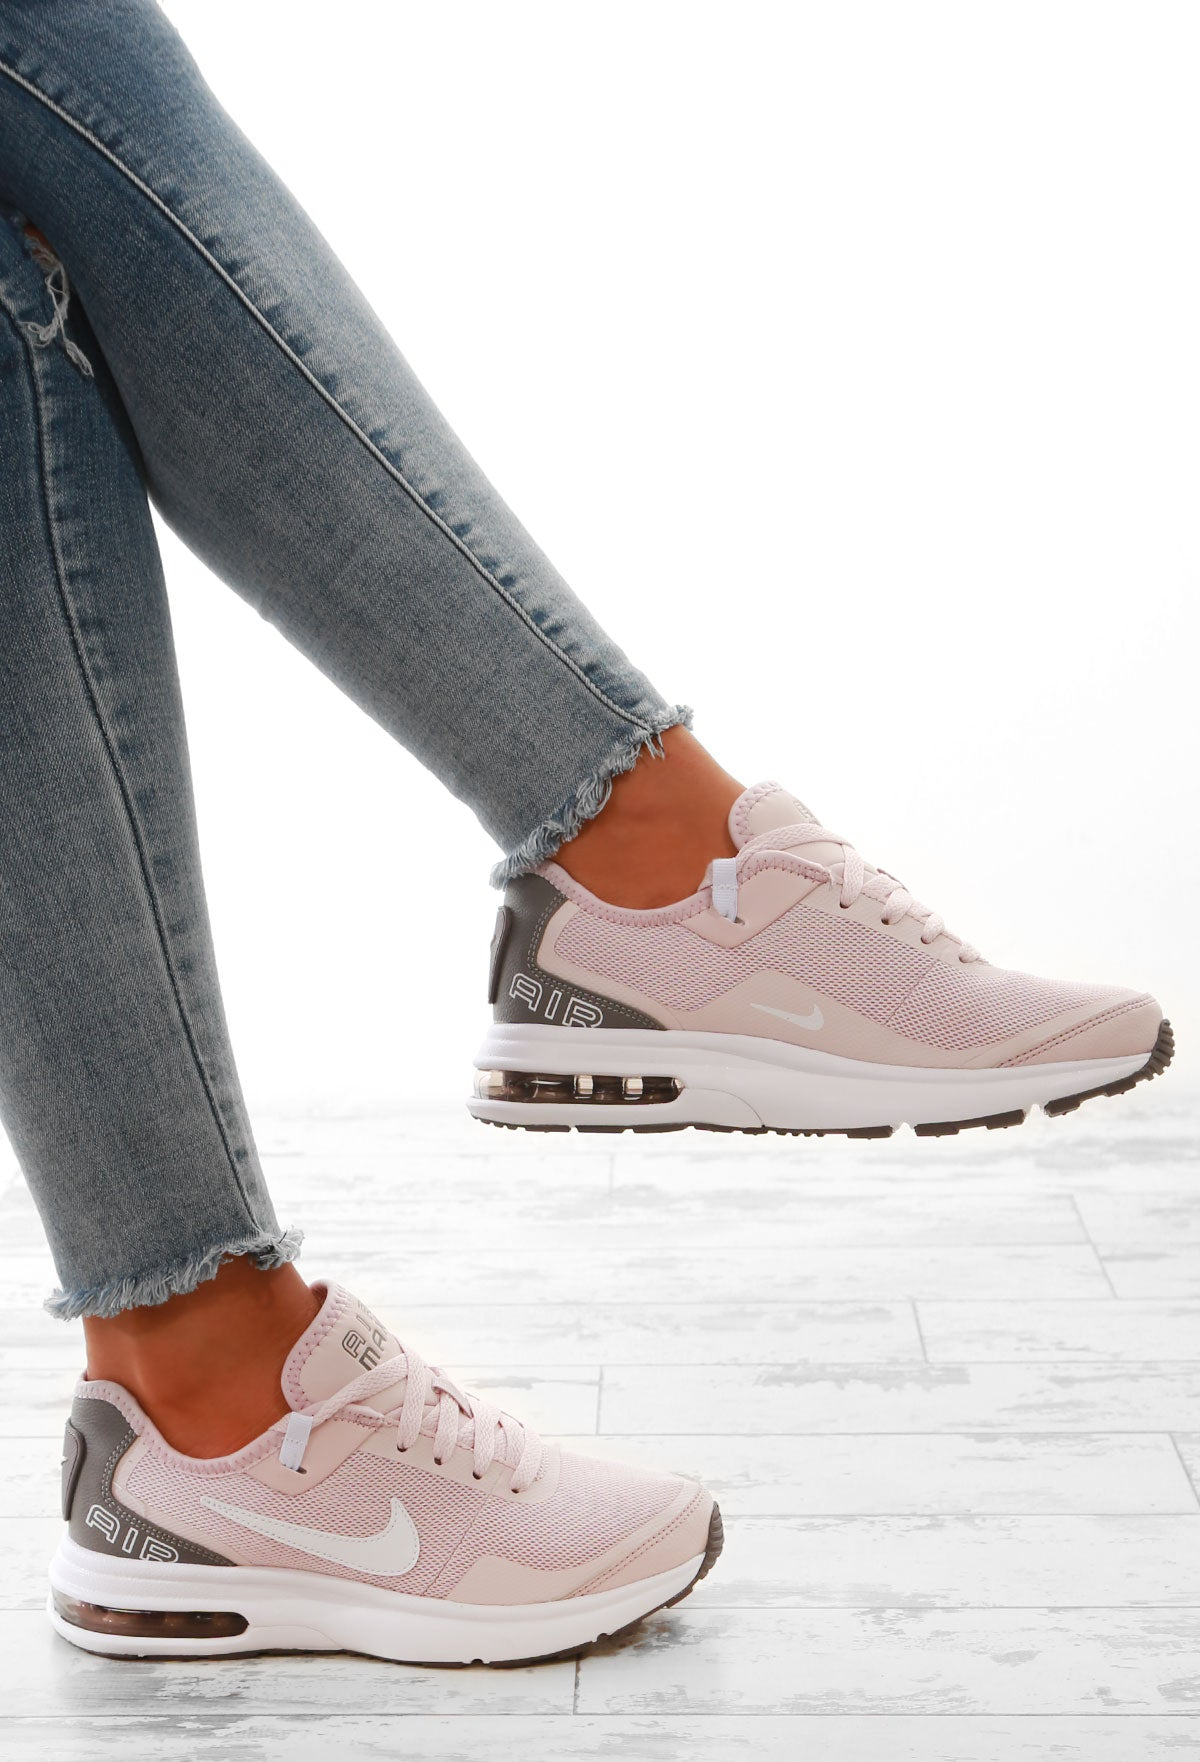 reputable site b605f f5c24 Nike Air Max Pink LB Trainers